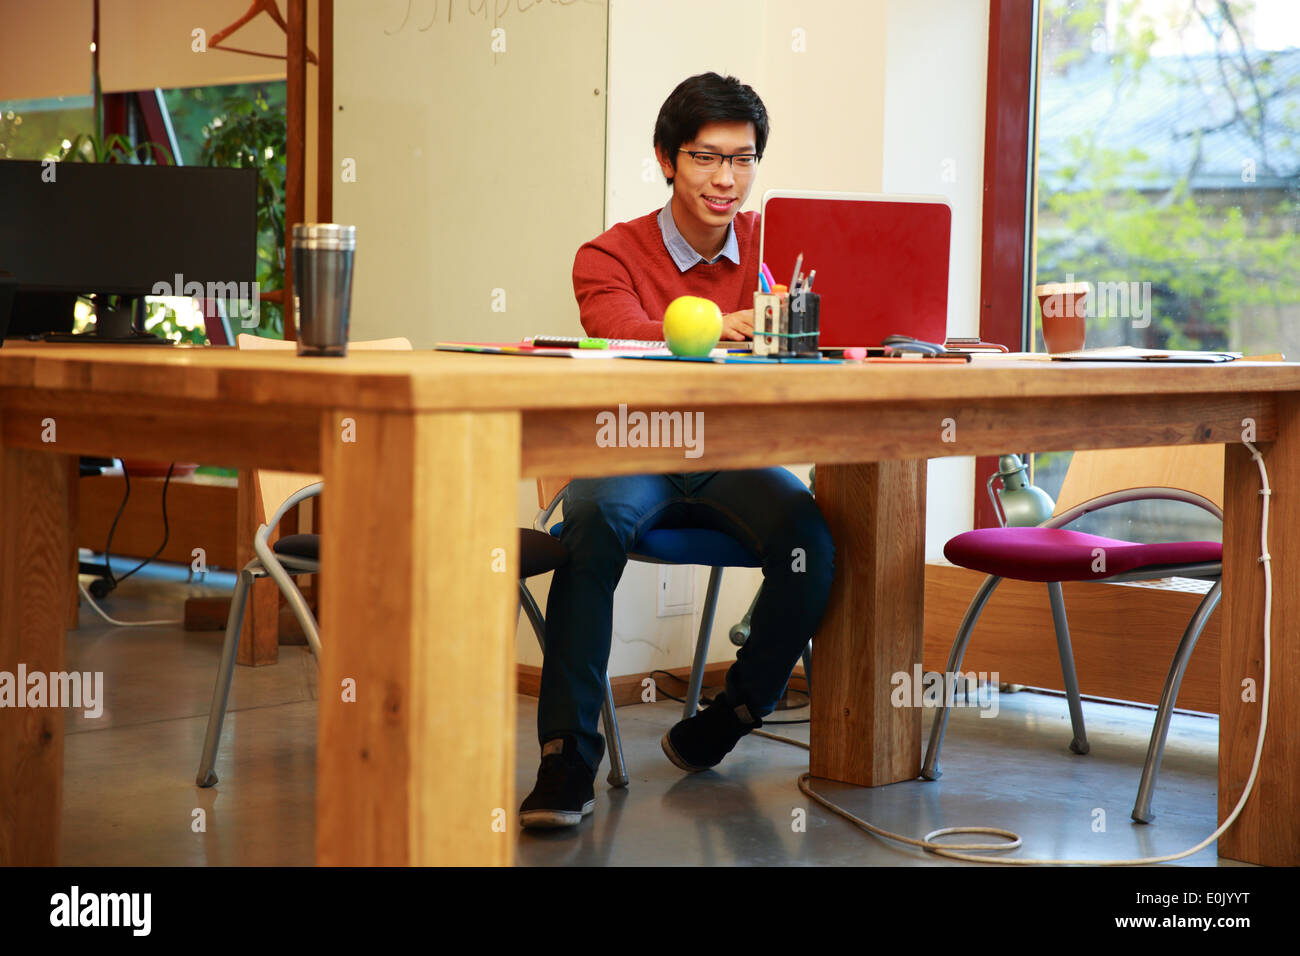 Young Asian man using laptop Photo Stock